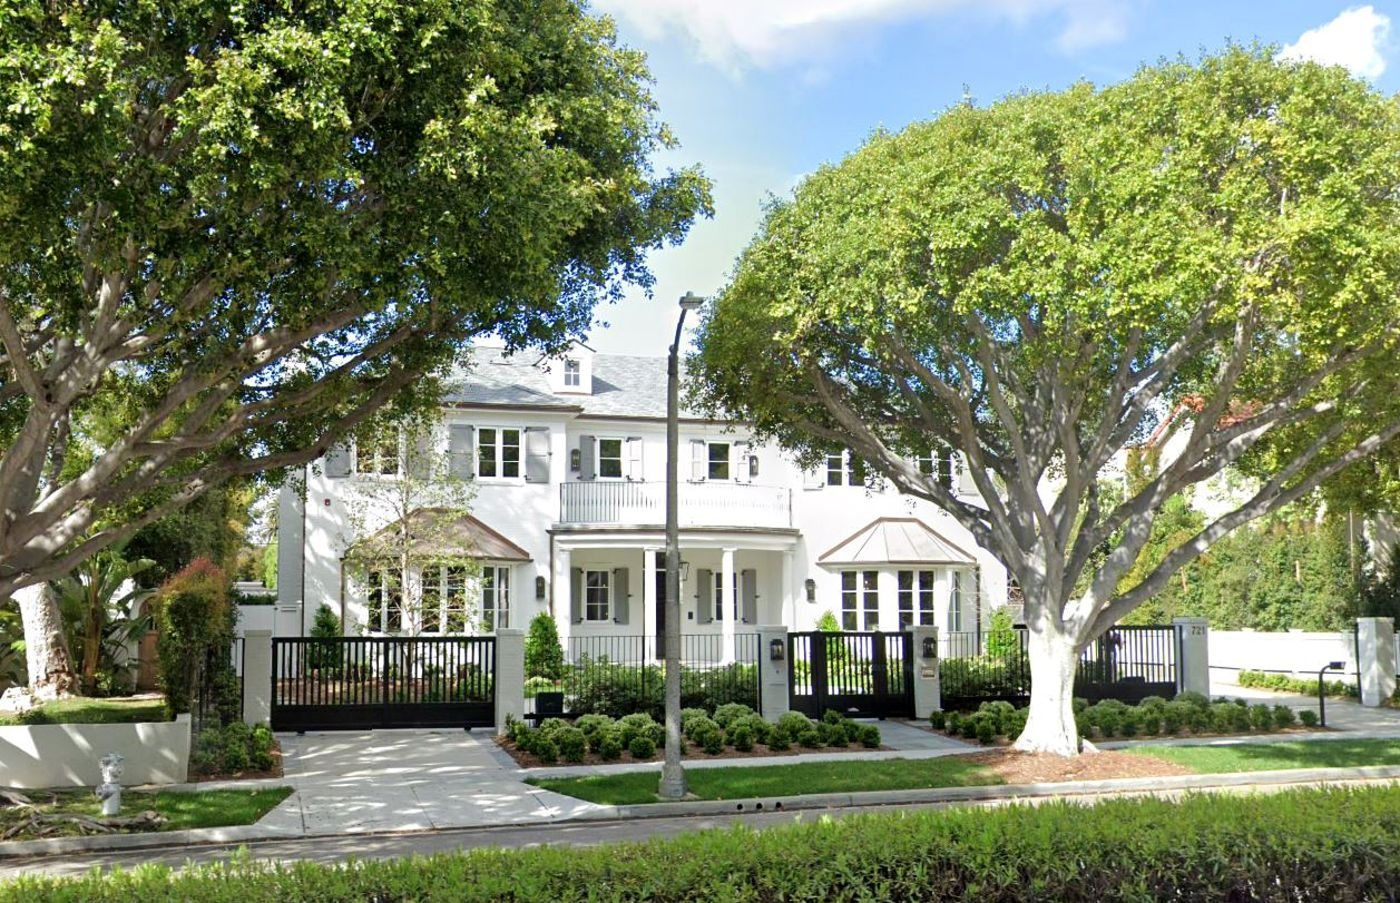 Beverly Hills Homeowner Scores $83 Million Loan to Expand Mansion, One Million Dollar Plus News